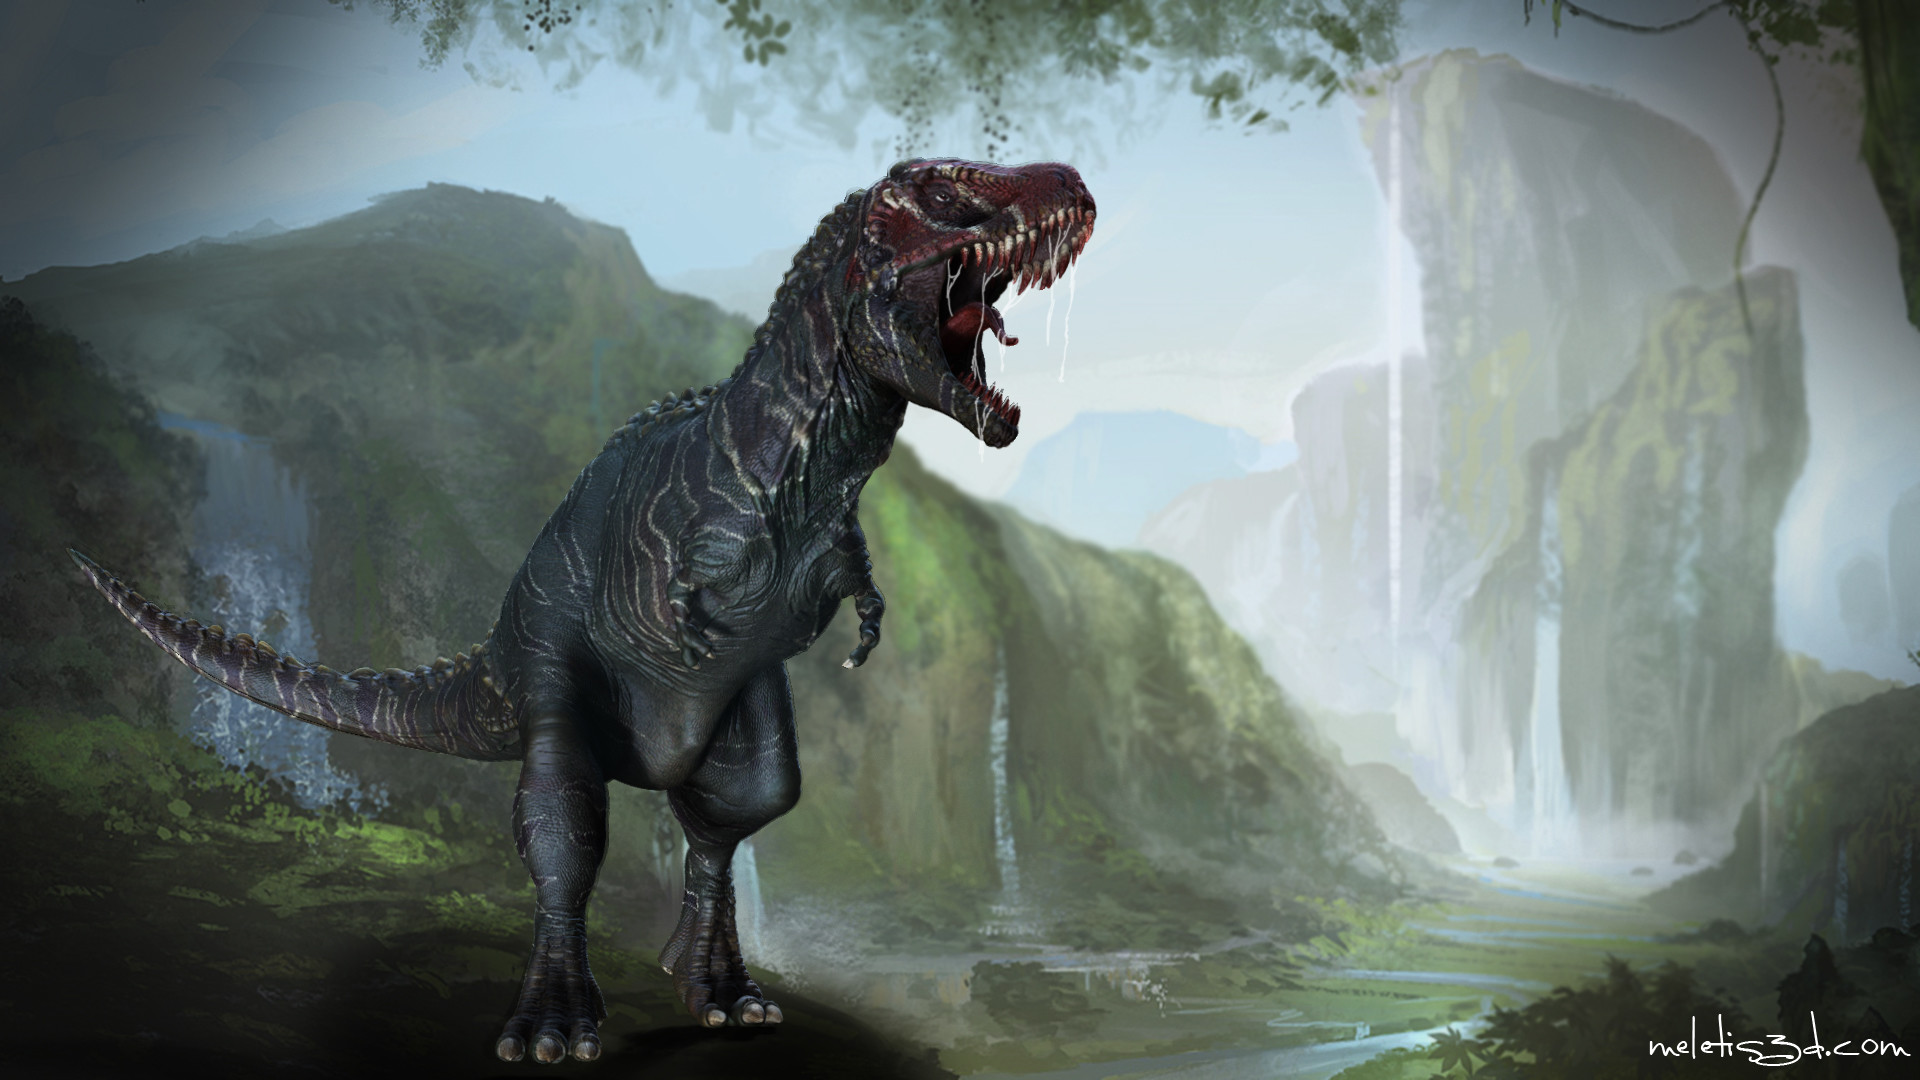 Res: 1920x1080, Jurassic Park T-rex Wallpaper For Iphone